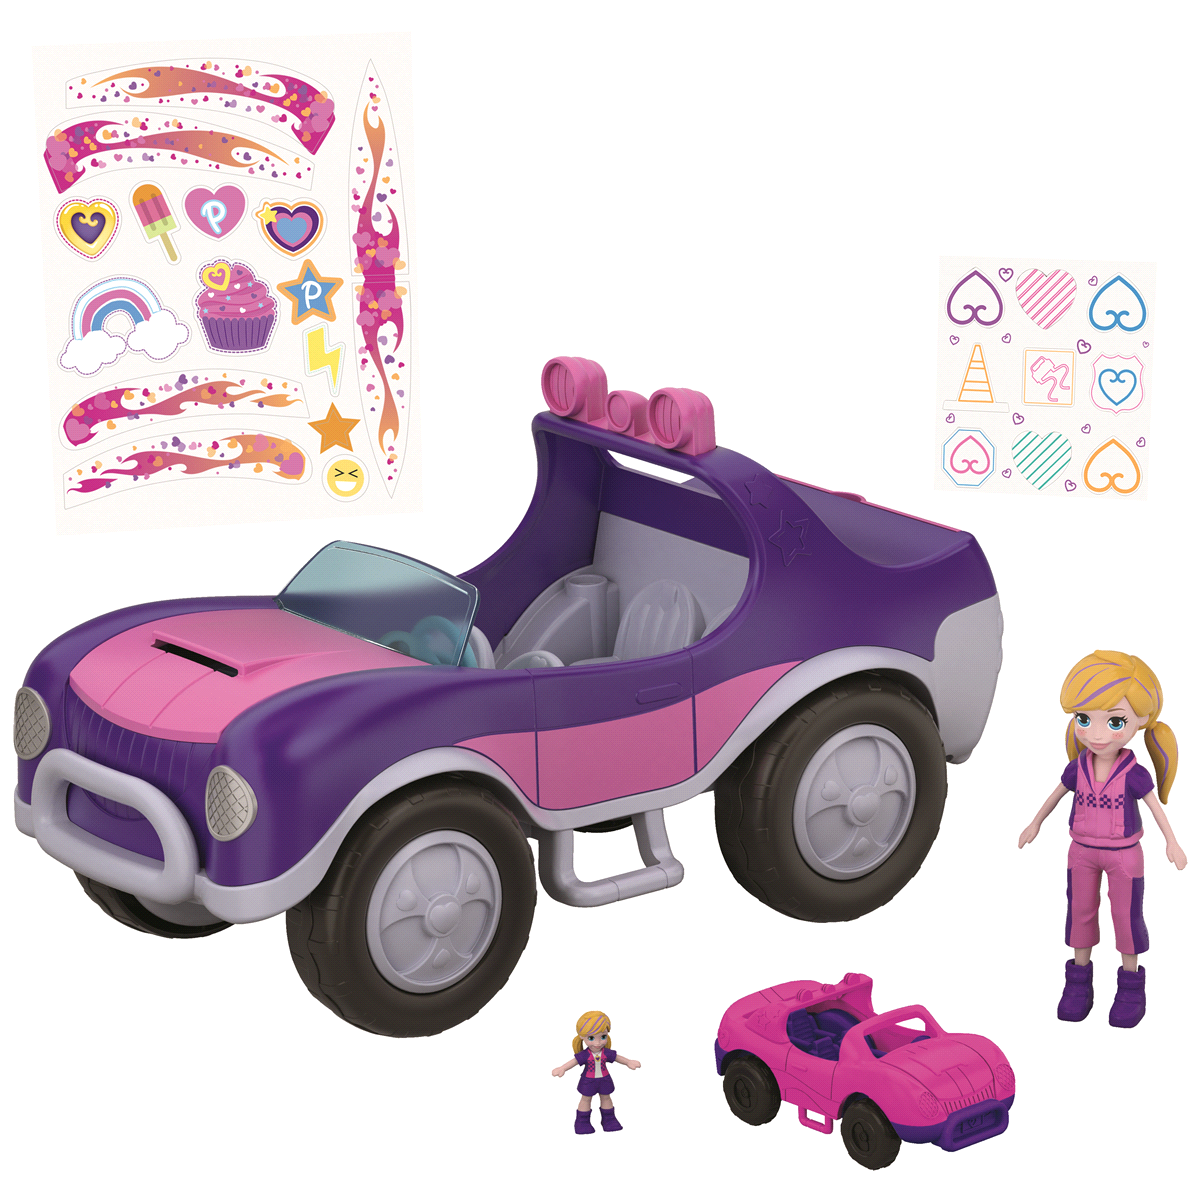 slide 9 of 12, Polly Pocket S.U.V. (Secret Utility Vehicle) Set,